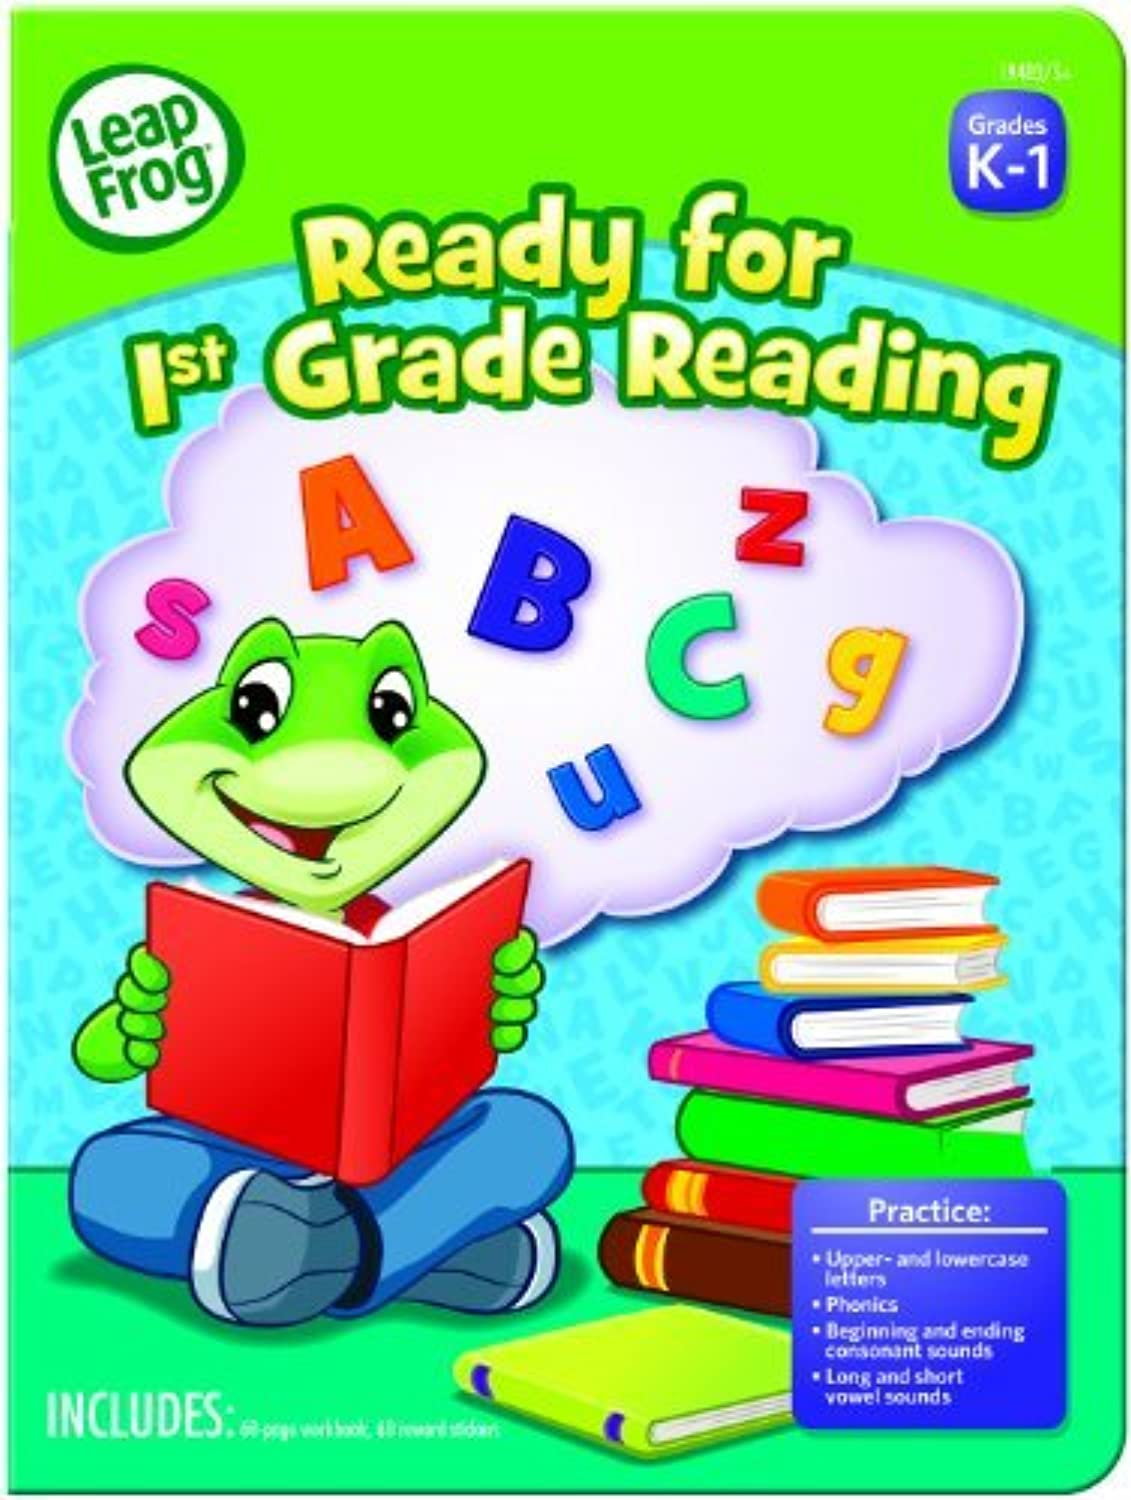 LeapFrog Ready for 1st Grade Reading Workbook with 60 Pages and 60 Reward Stickers (19403) by MEGA Brands America, Inc. (English Manual) B00NZFJ8PA | Spielen Sie das Beste